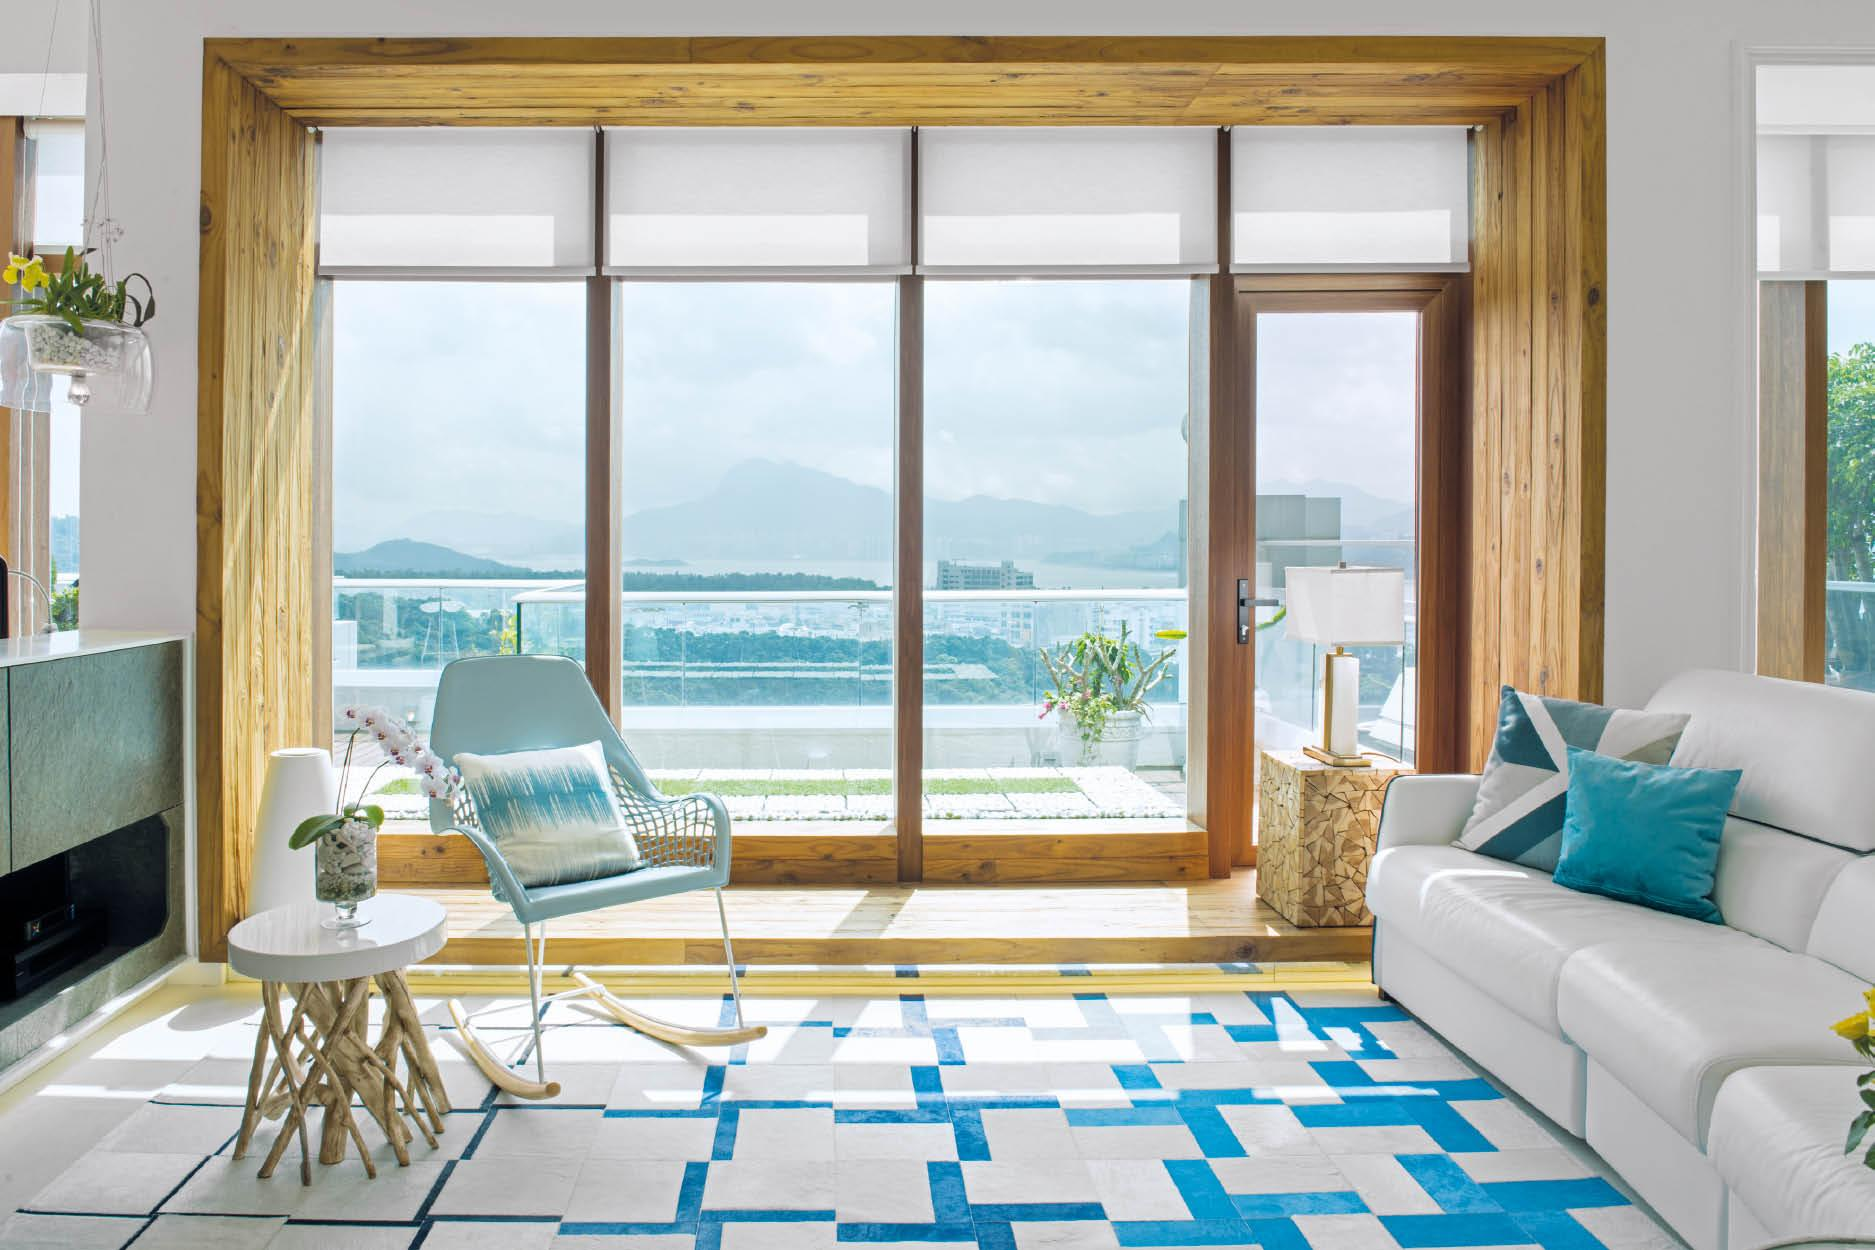 The wooden frame highlights the picturesque views outside like an artwork